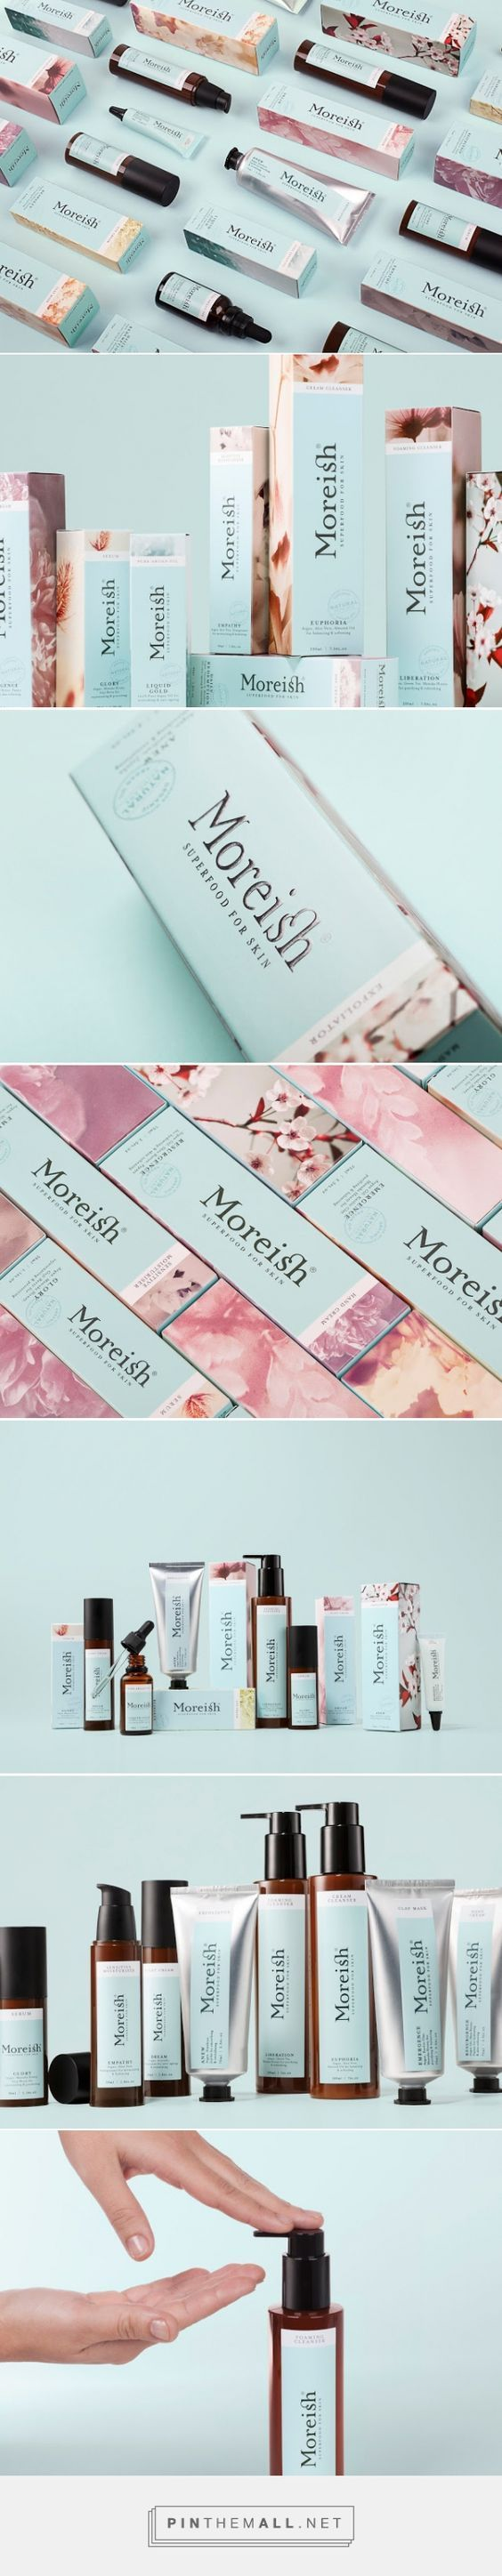 Moreish Skincare Branding by Milk | Fivestar Branding – Design and Branding Agency & Inspiration Gallery